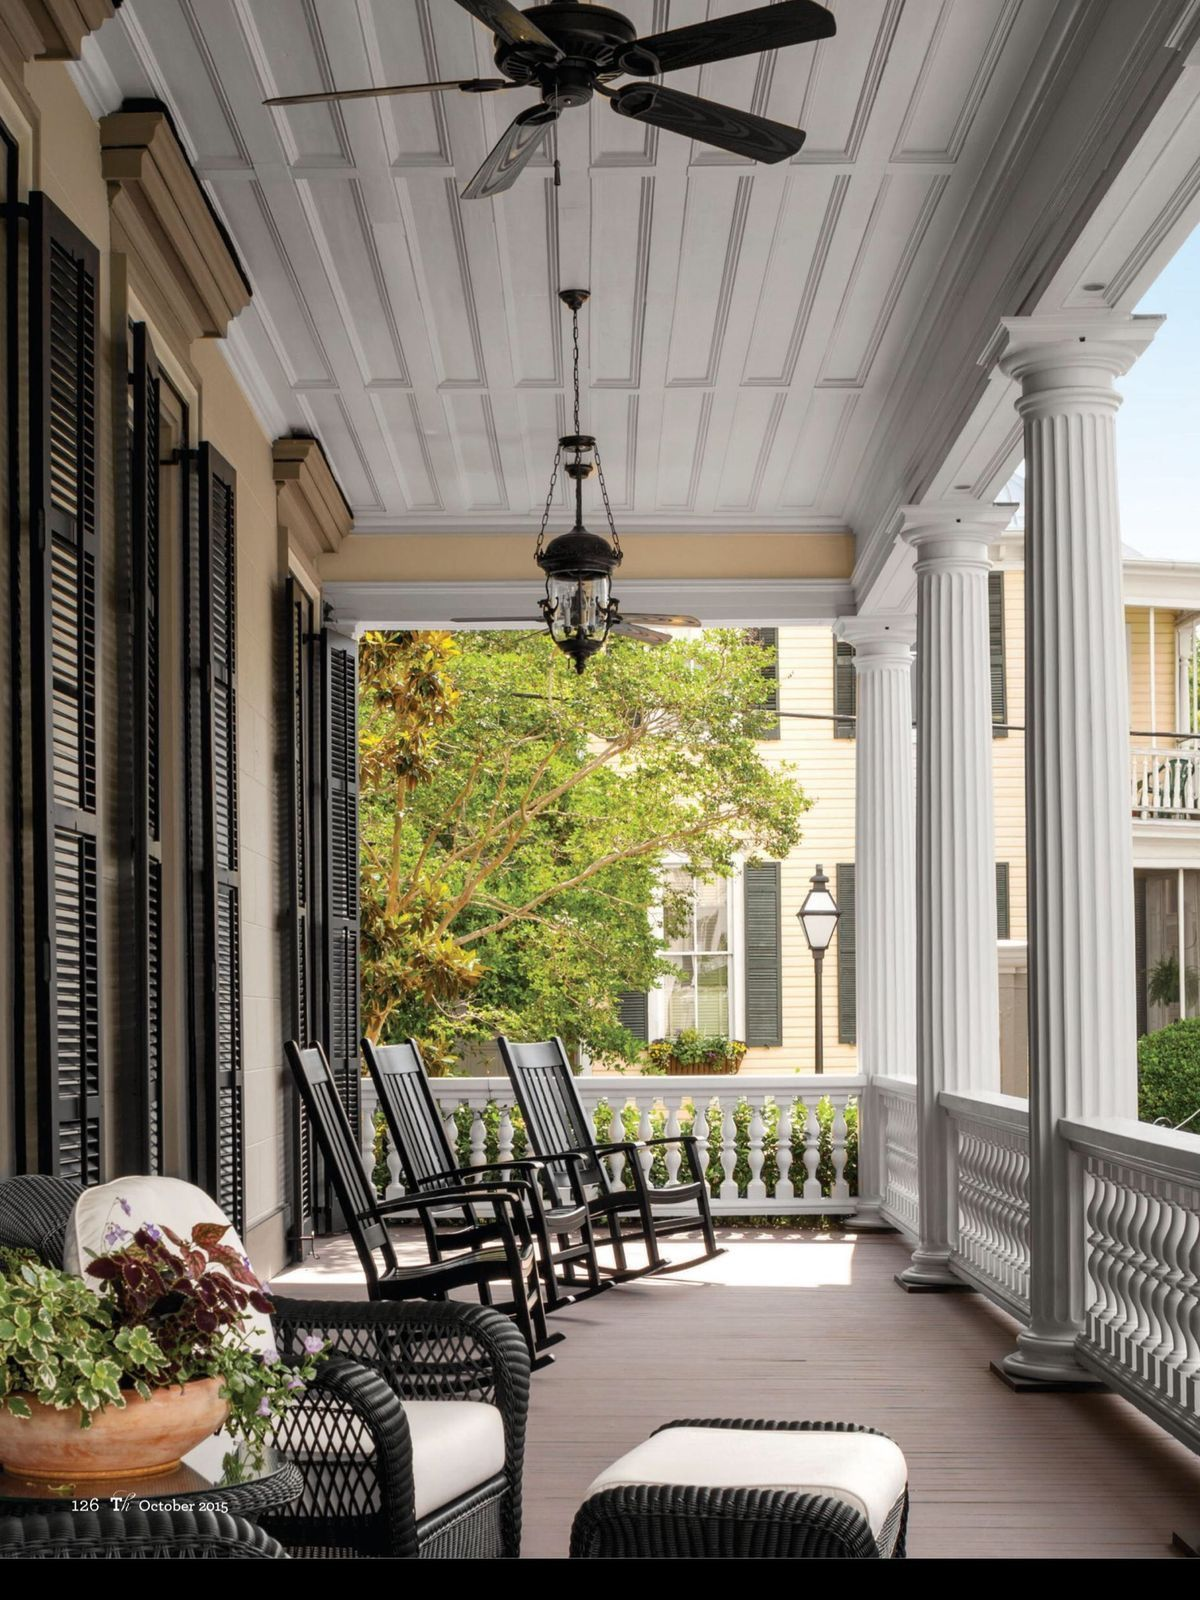 Pin by Karen McCreary on Southern Home | Modern farmhouse ... on Farmhouse Outdoor Living Space id=91392